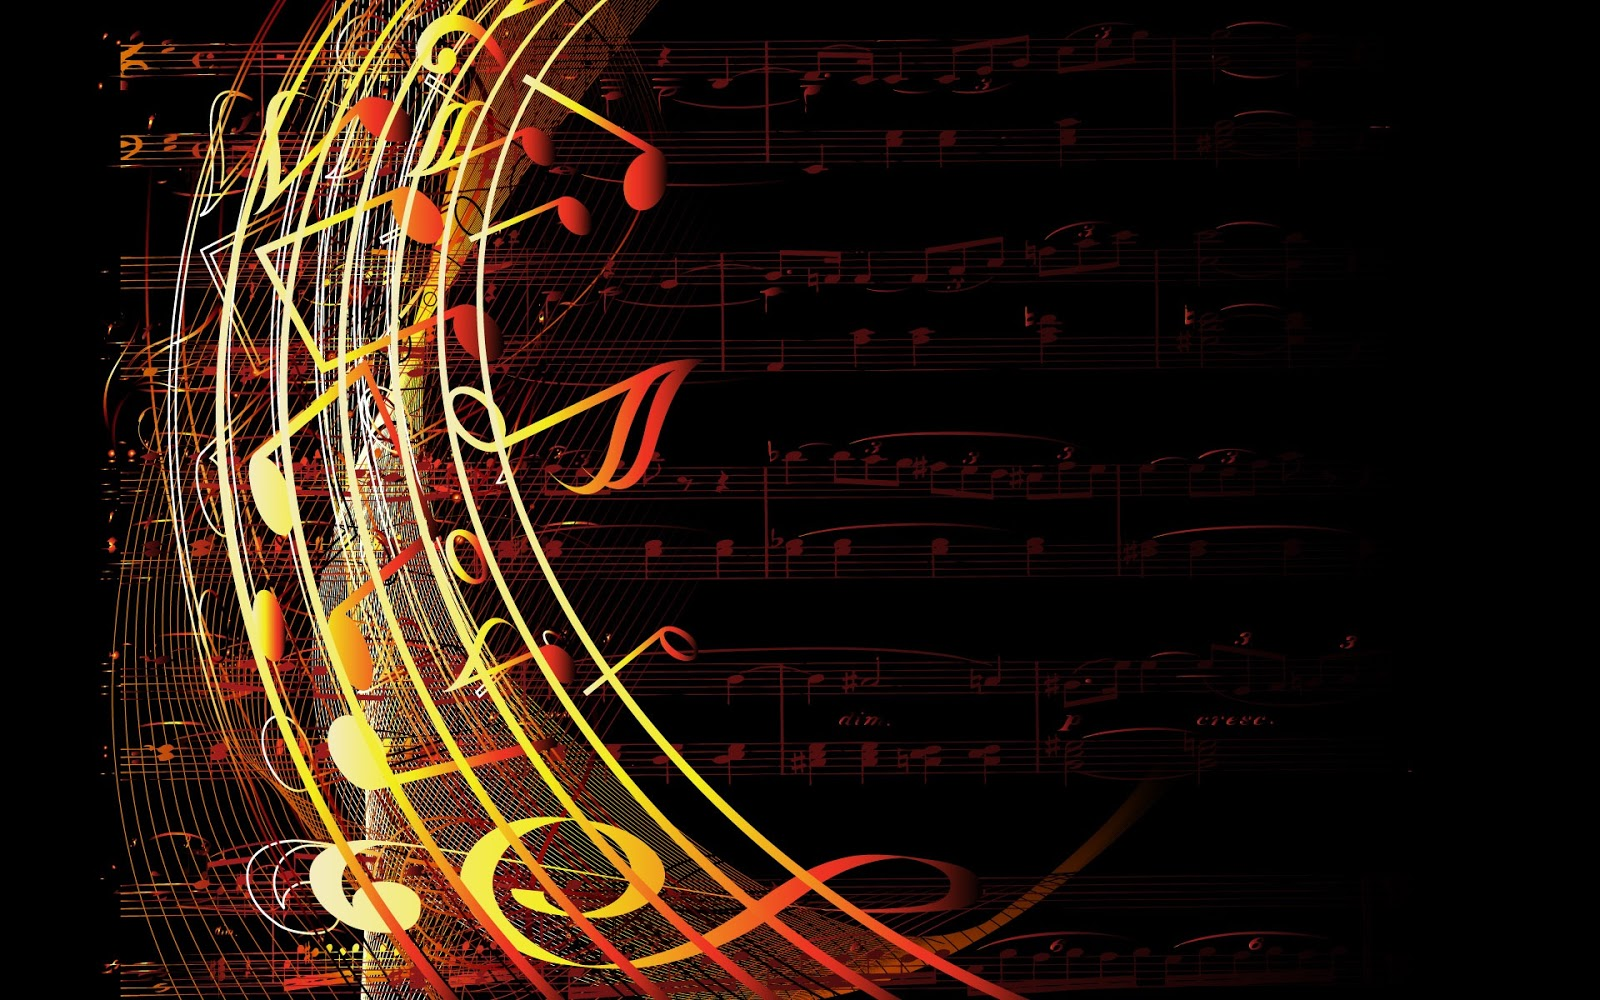 sheet music wallpaper hd 1080p - photo #1